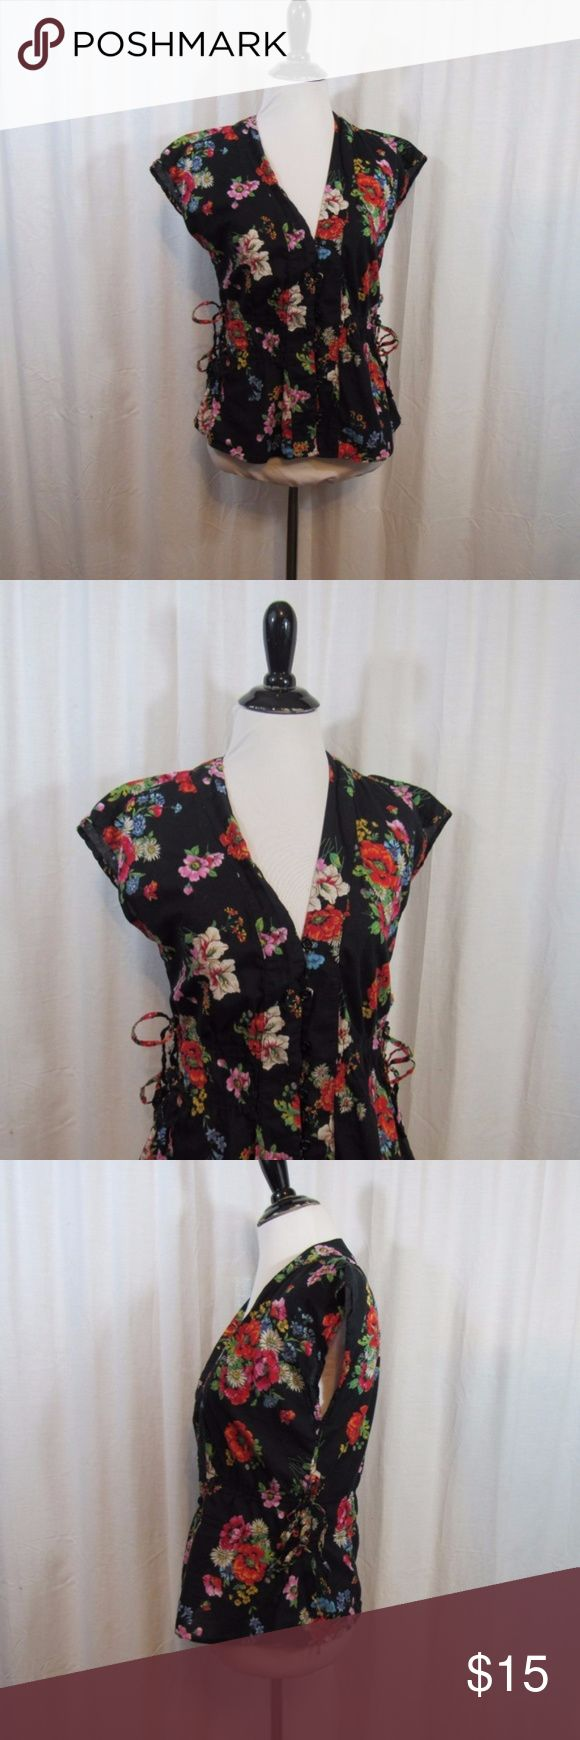 "H&M Black Floral Short Sleeve Top 10 Brand: H&M Size: 10 Material: 100% Cotton Care Instructions: Machine Wash  Bust: 36"" Sleeves:  Length: 20""  All clothes are in excellent used condition. No tears, stains or holes unless otherwise I noted. P45 H&M Tops Blouses"